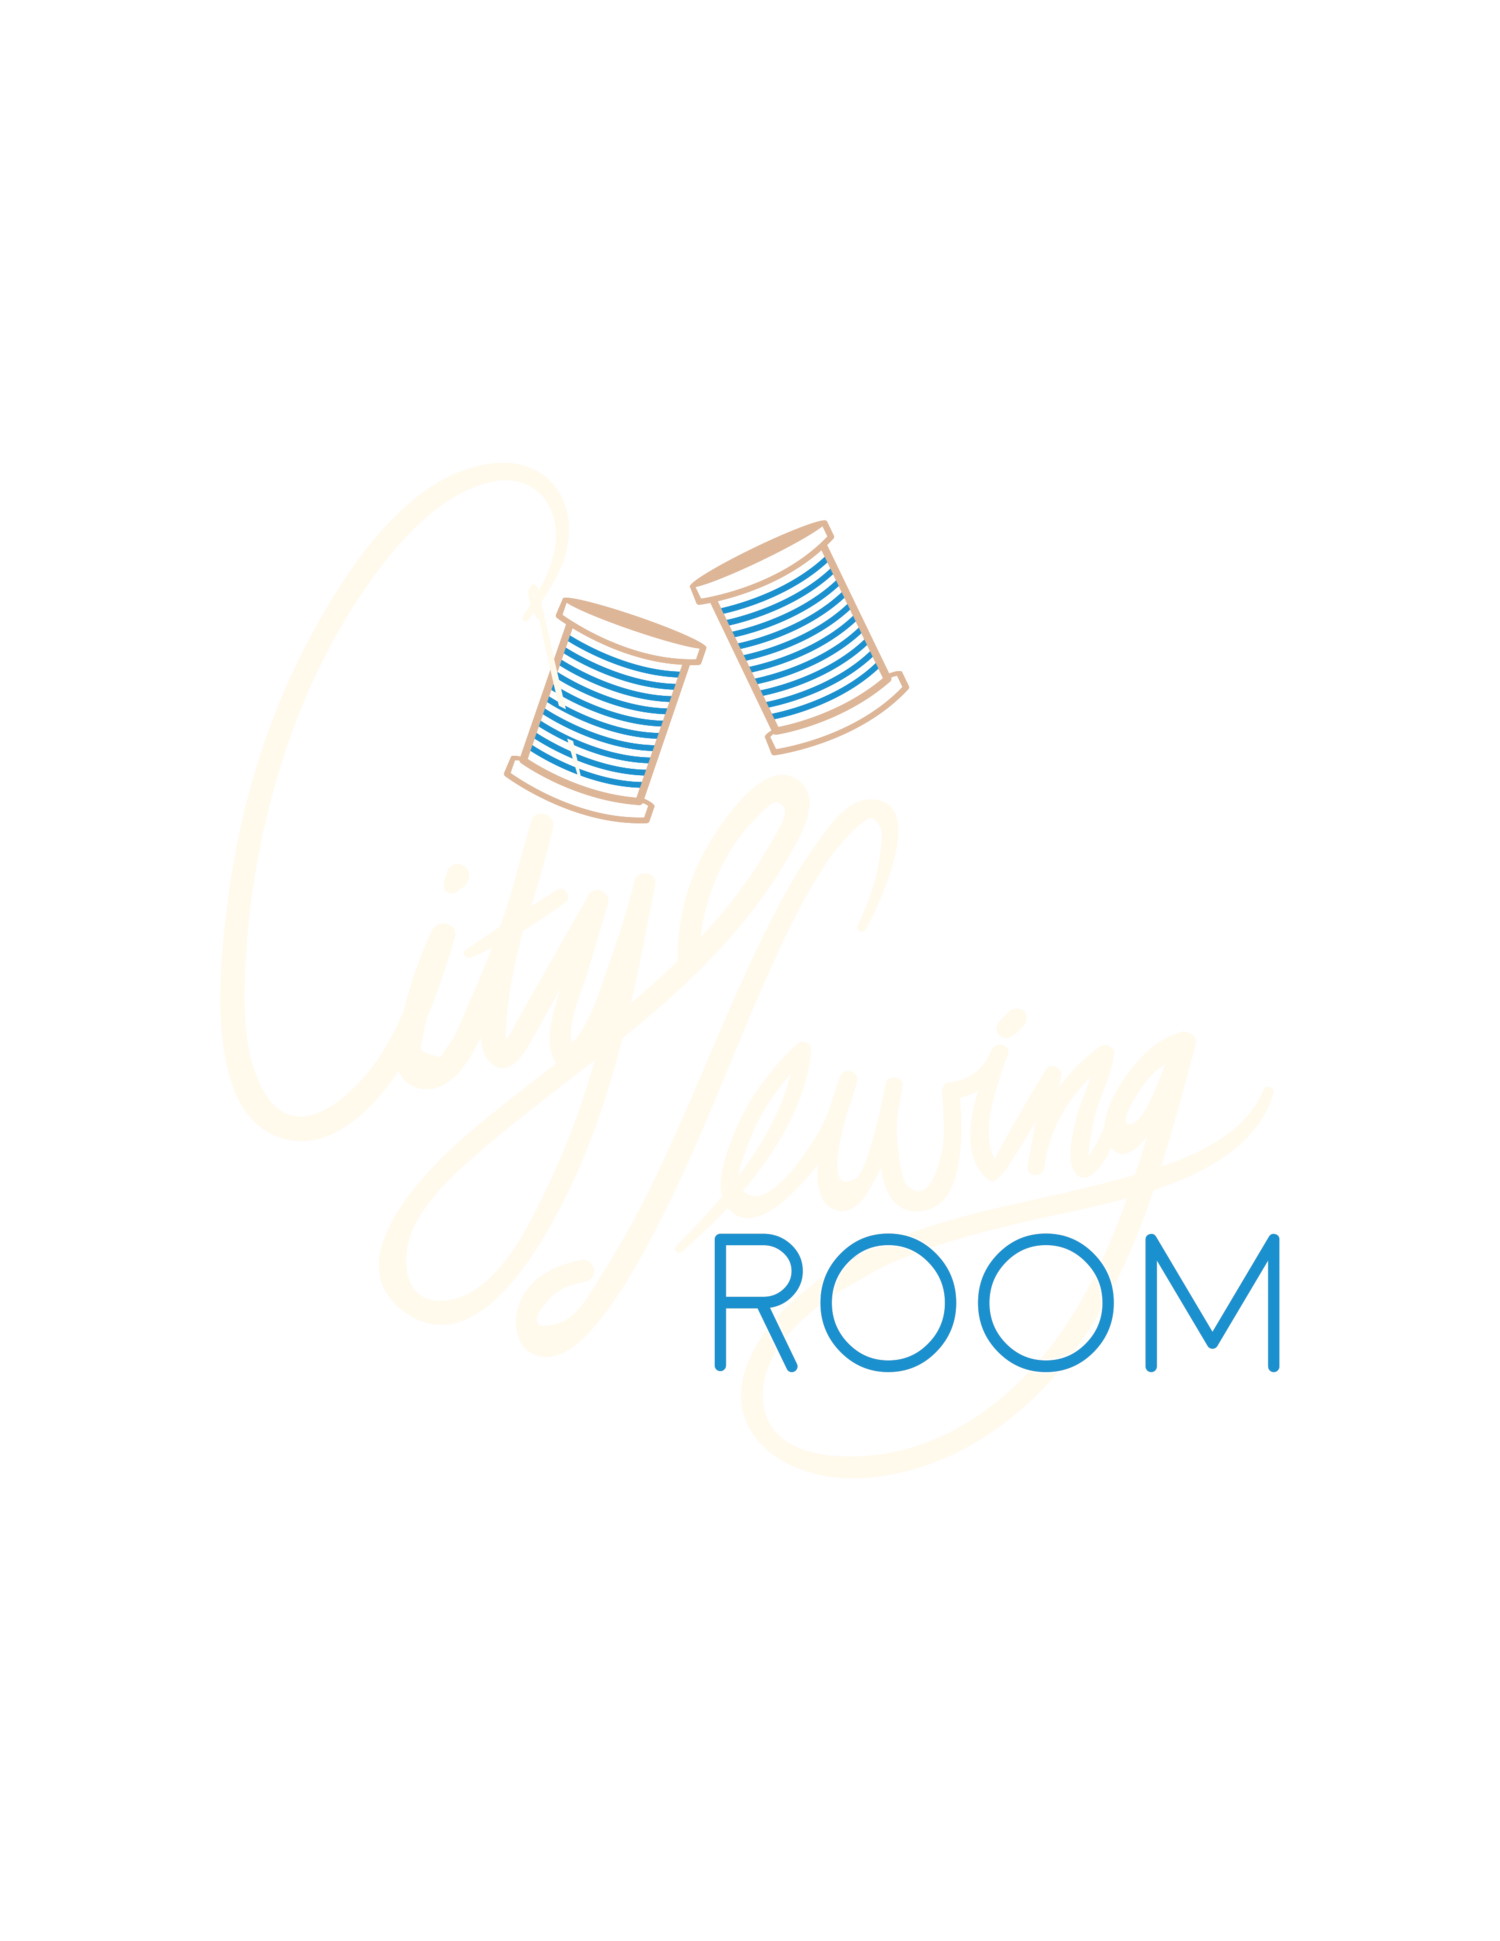 City Sewing Room